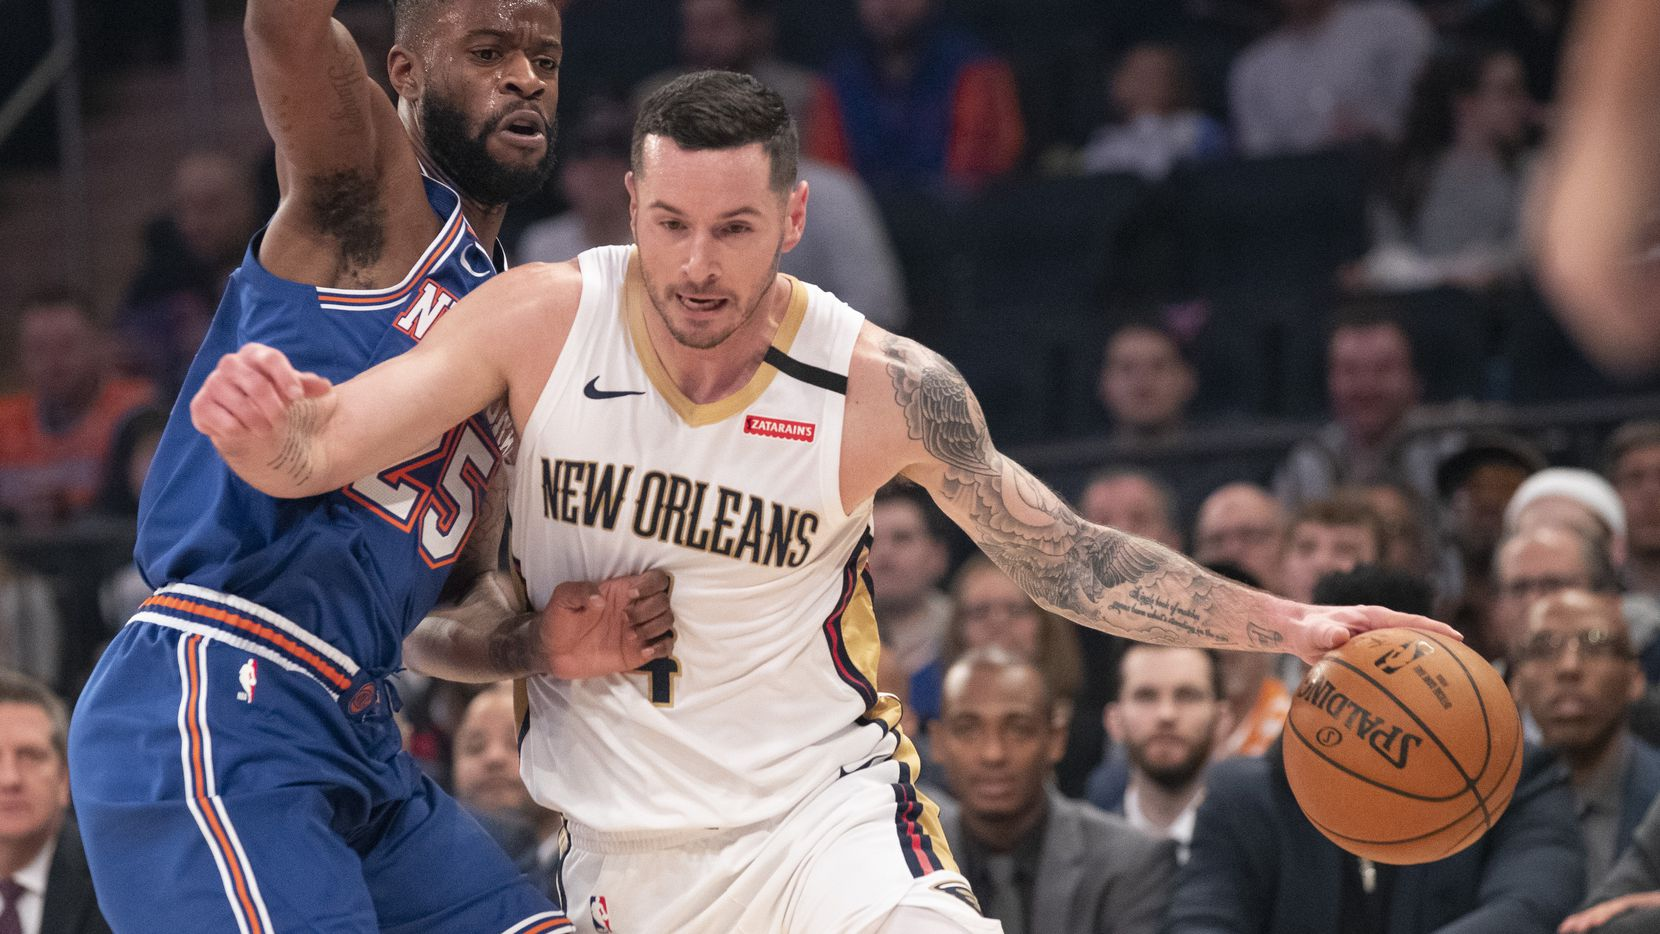 Pelicans guard JJ Redick (4) drives by Knicks guard Reggie Bullock (25) during the first half of a game on Friday, Jan. 10, 2020, at Madison Square Garden in New York.